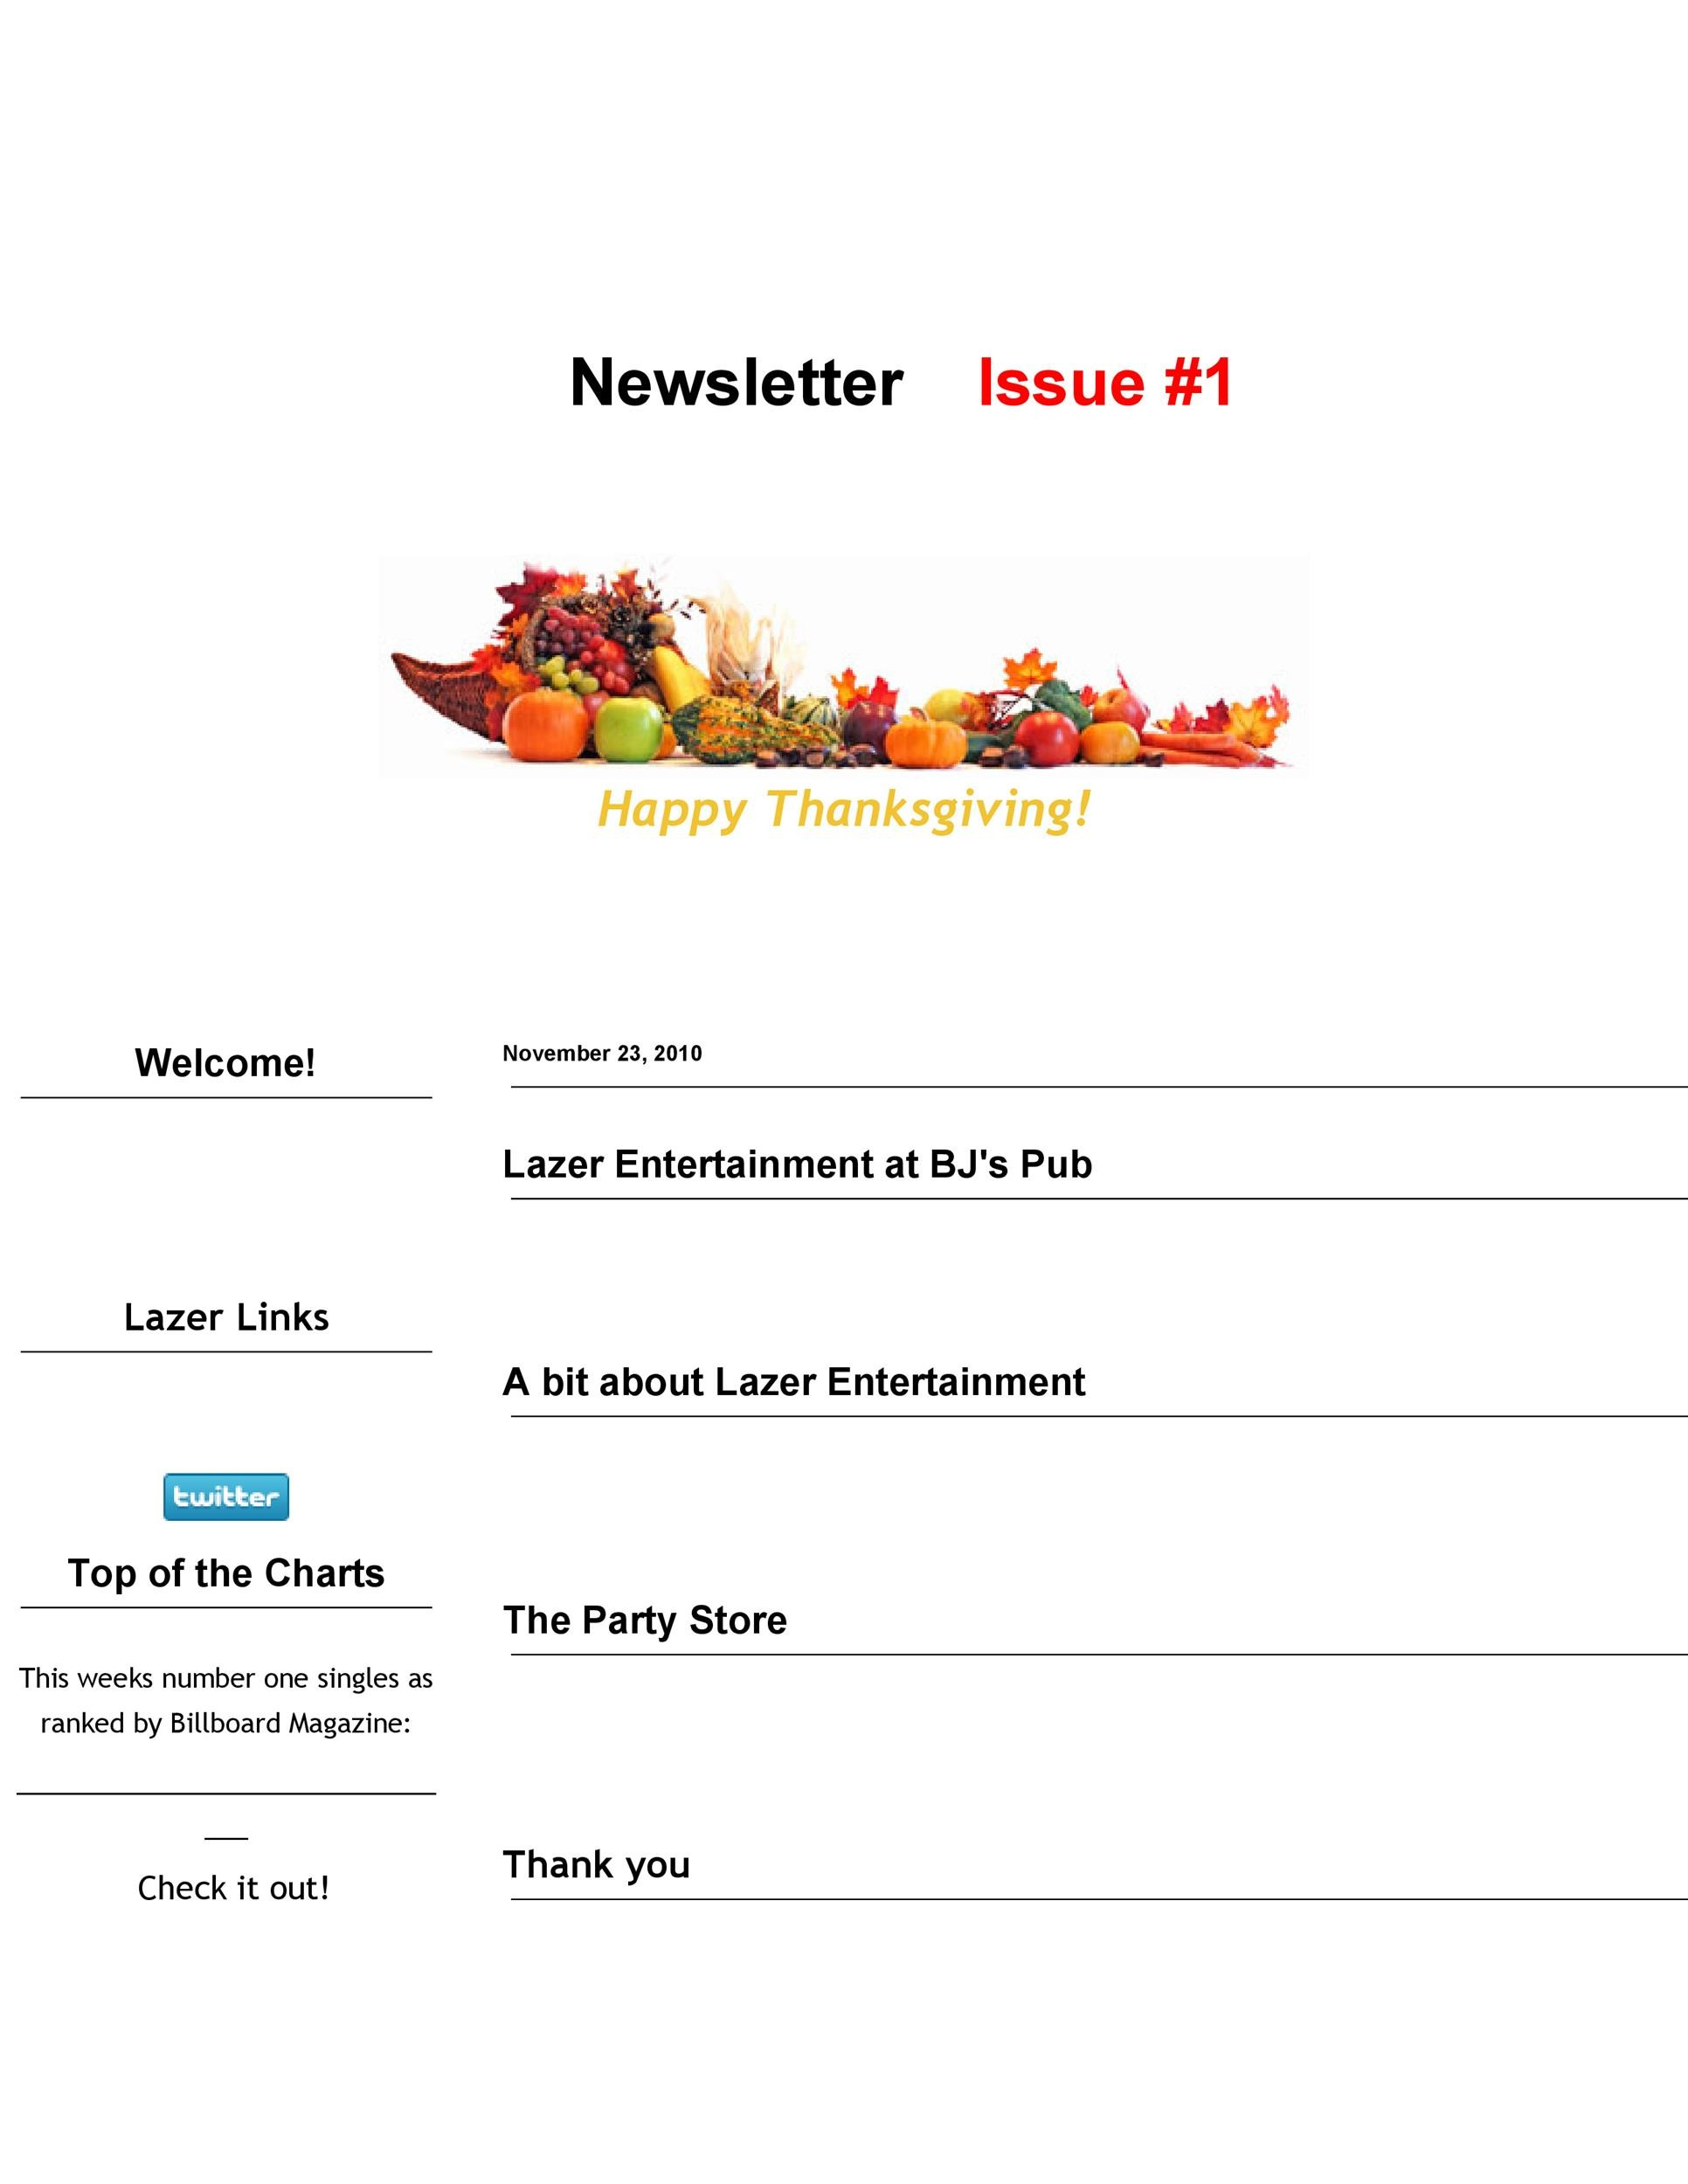 Newsletter Template 27